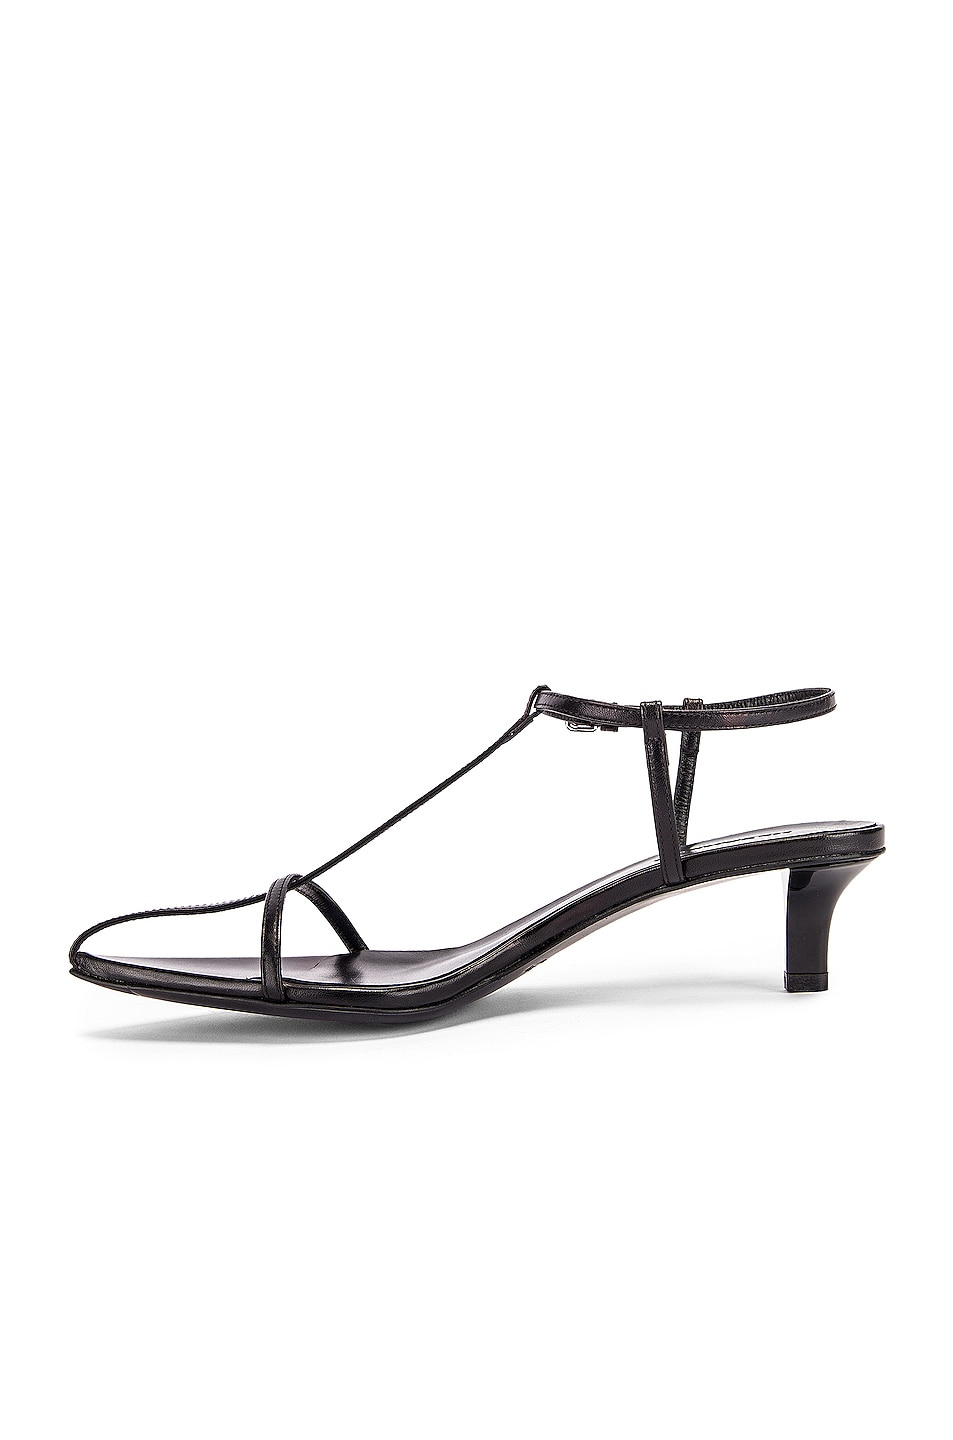 Image 5 of Jil Sander Leather Kitten Heel Sandals in Black